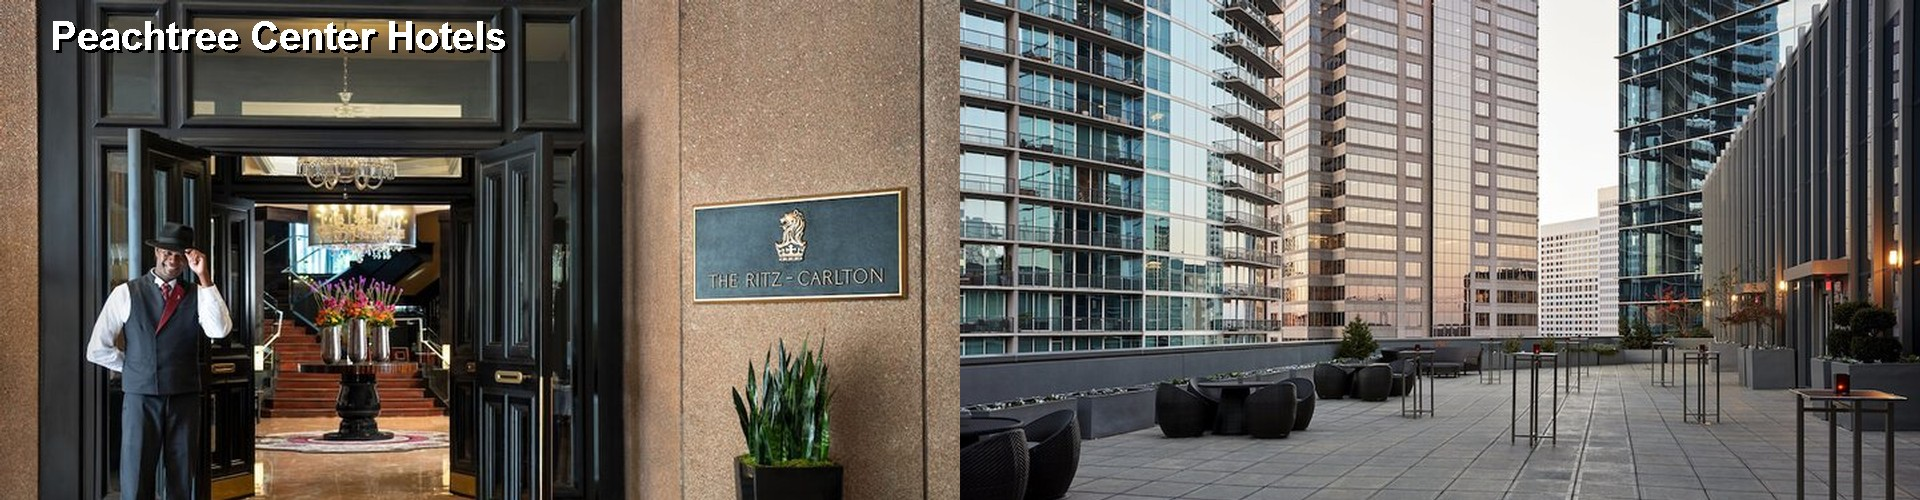 5 Best Hotels near Peachtree Center